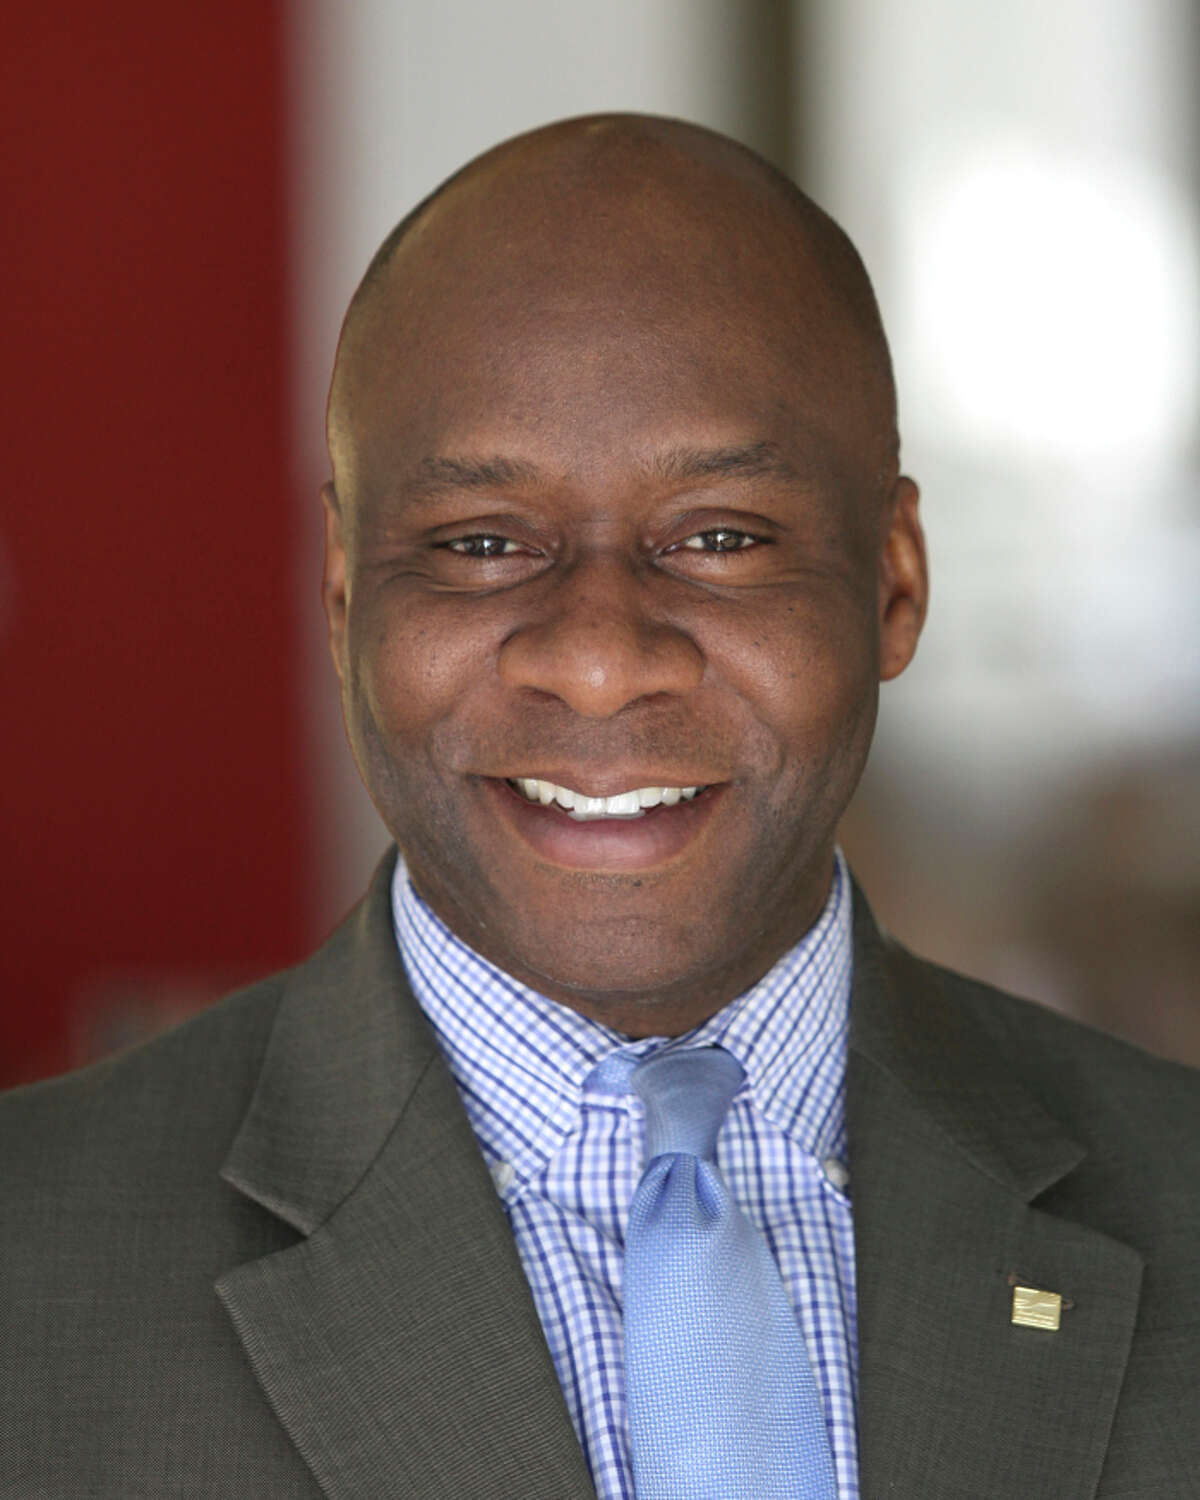 After multiple leadership changes over the past year, San Antonio Metropolitan Health District has a new director.